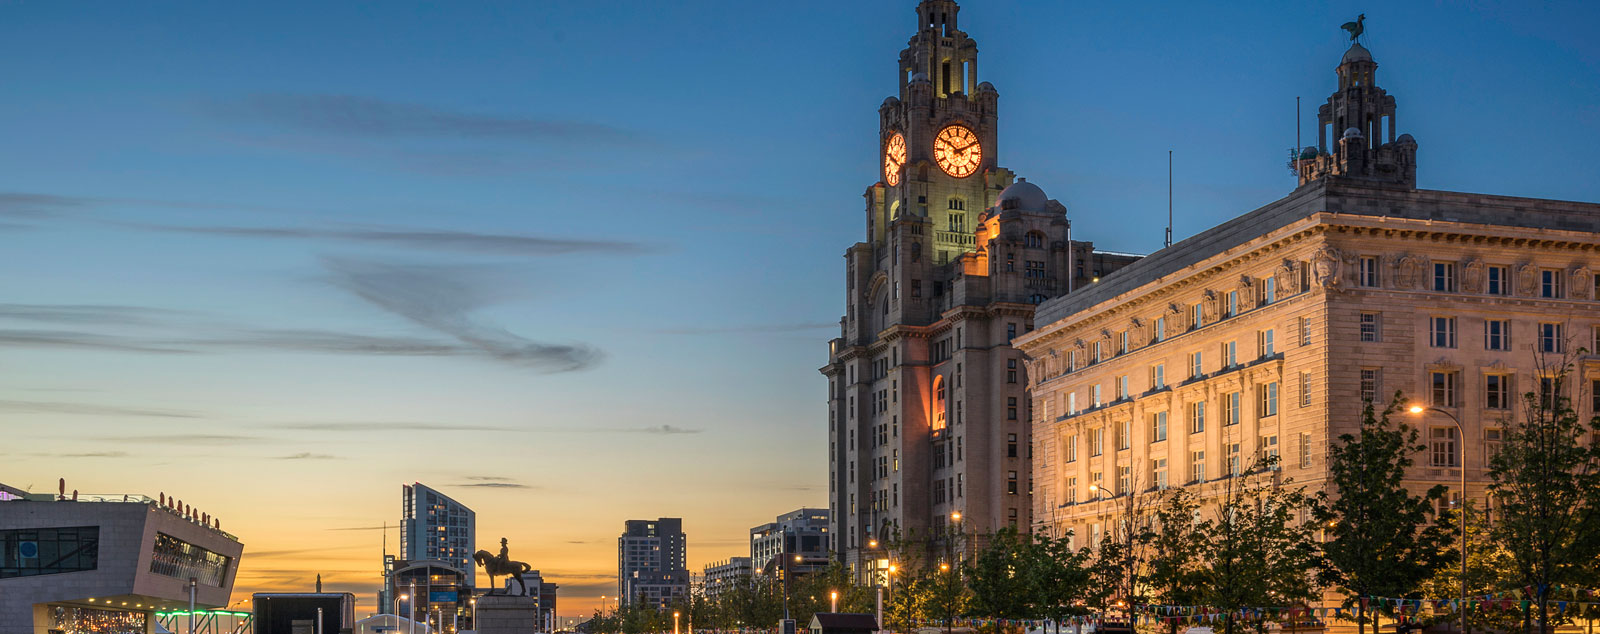 Liverpool's famous Bund, a grand waterfront street of buildings